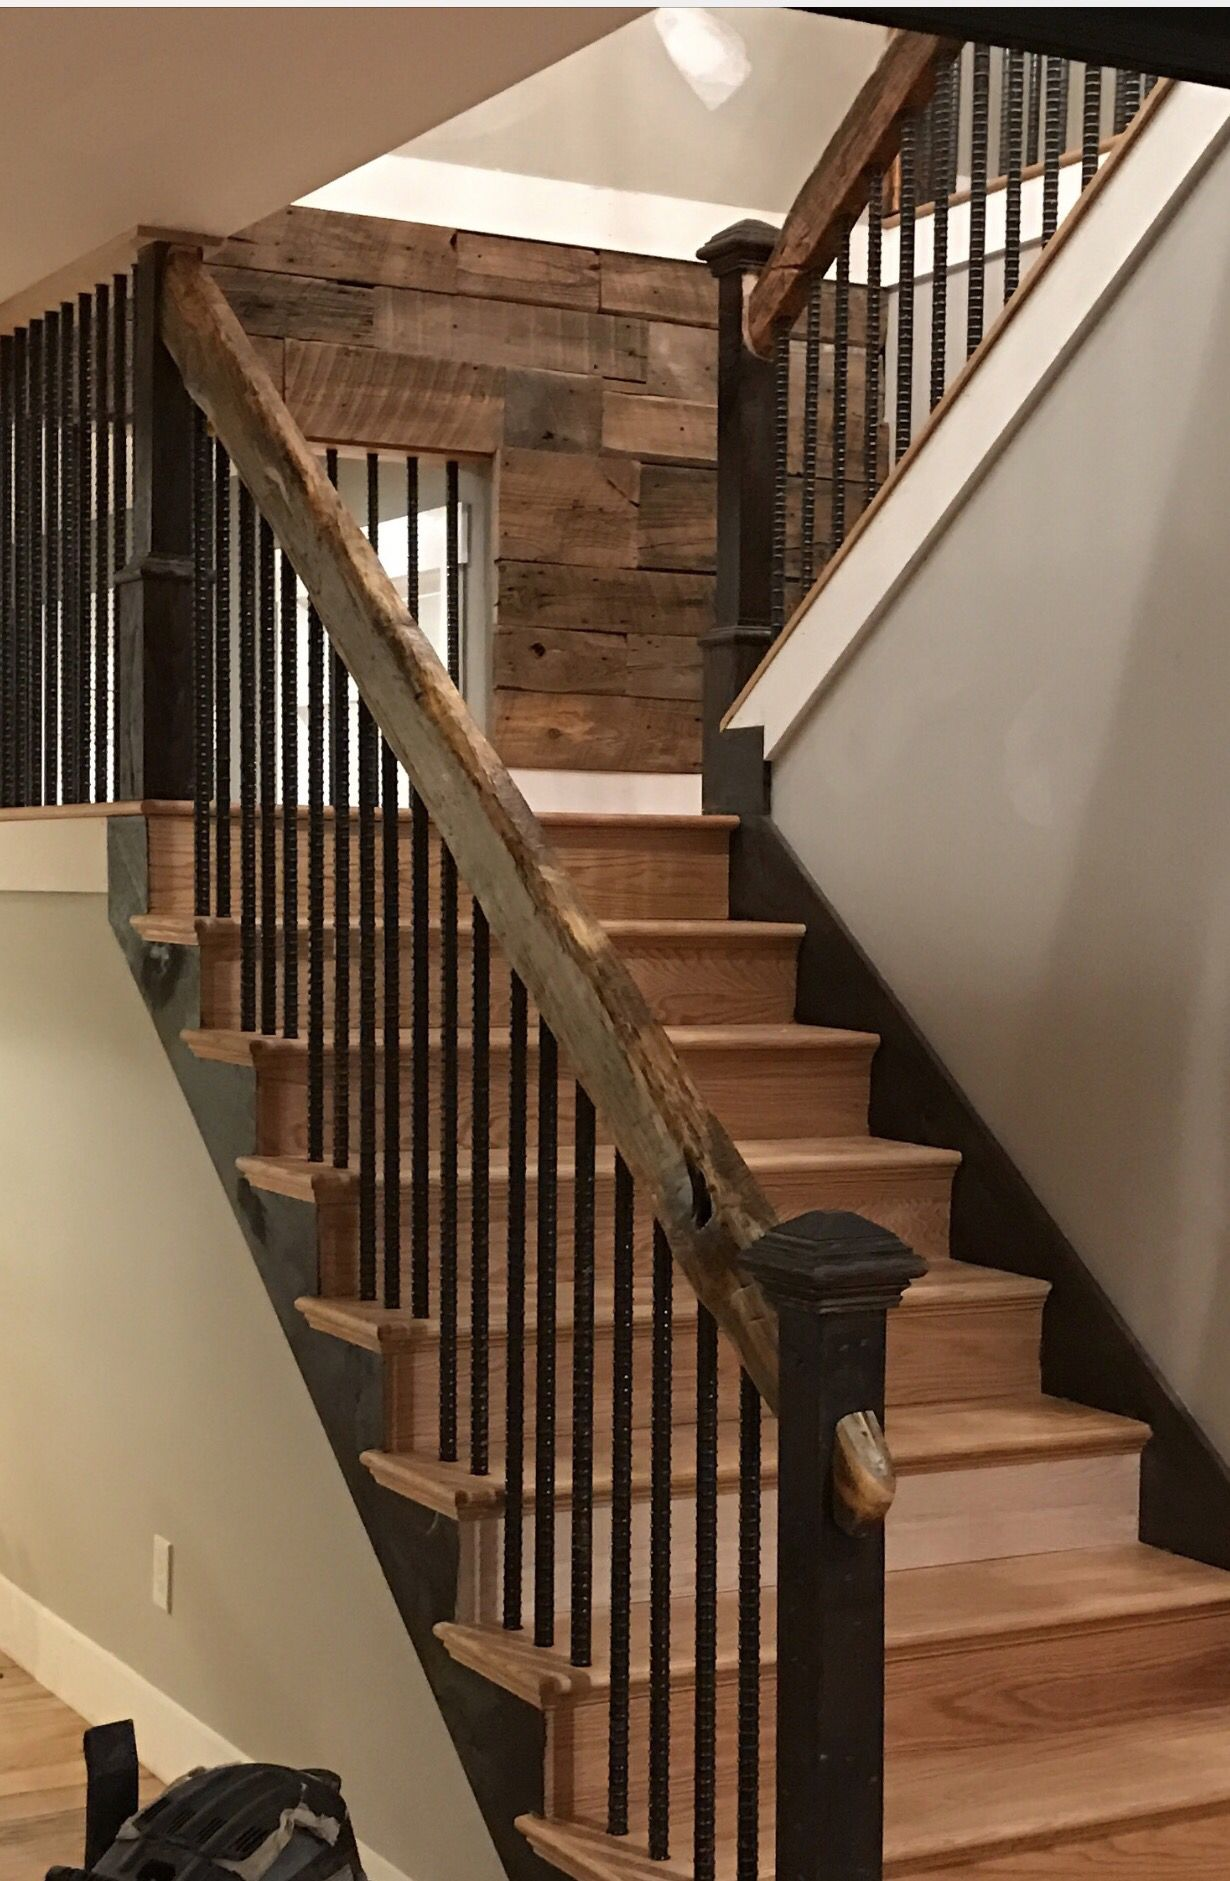 Rustic Staircase Rustic Staircase Rustic Stairs Diy Staircase | Rustic Handrails For Stairs | Modern | Country Style | Antique Wooden Stair | Basement | Interior